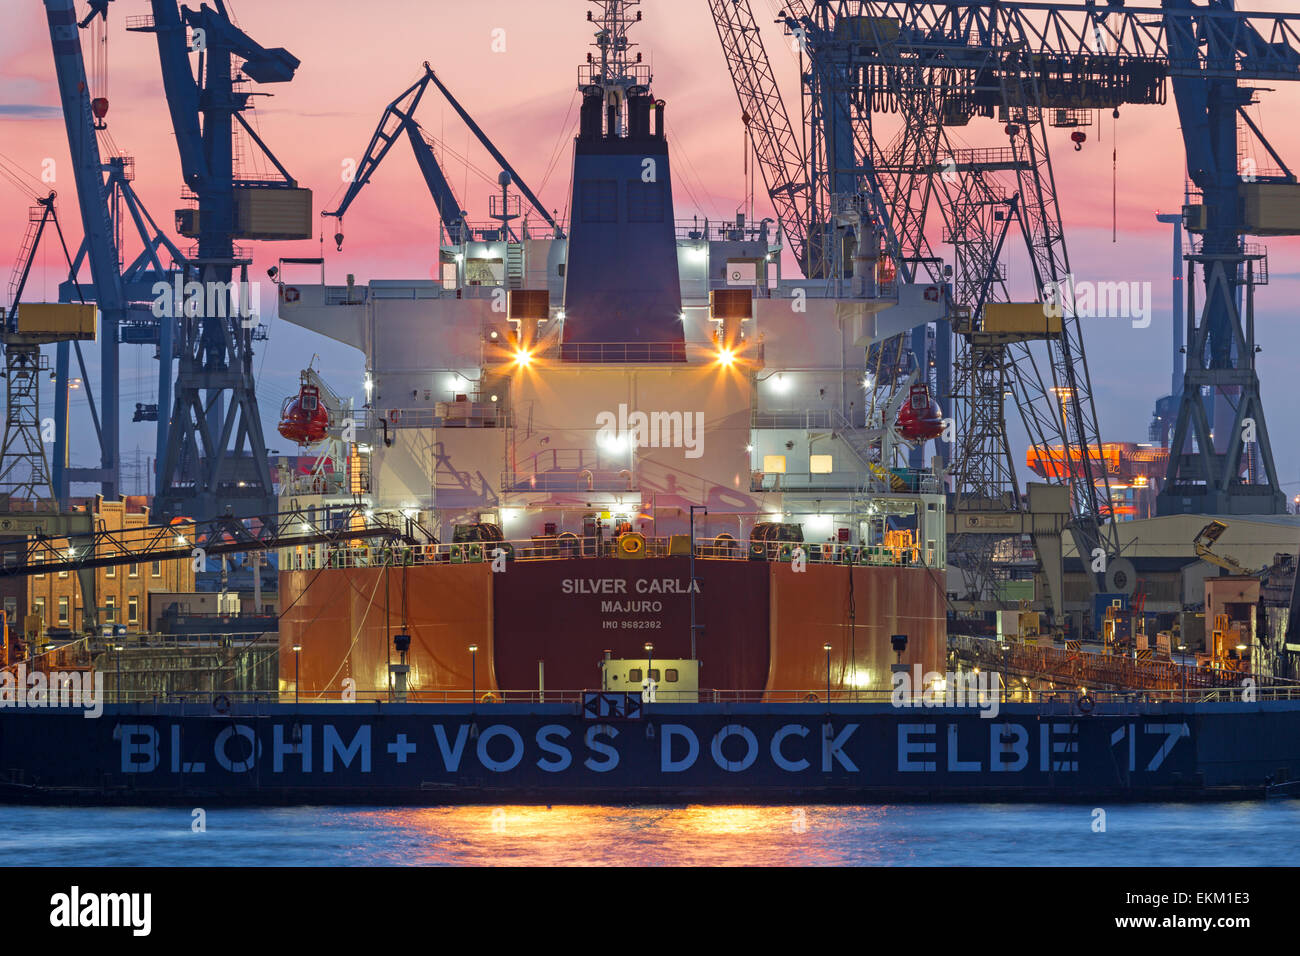 Tanker in a dry dock Blohm and Voss in the port Hamburg, Hamburg, Germany, Europe - Stock Image